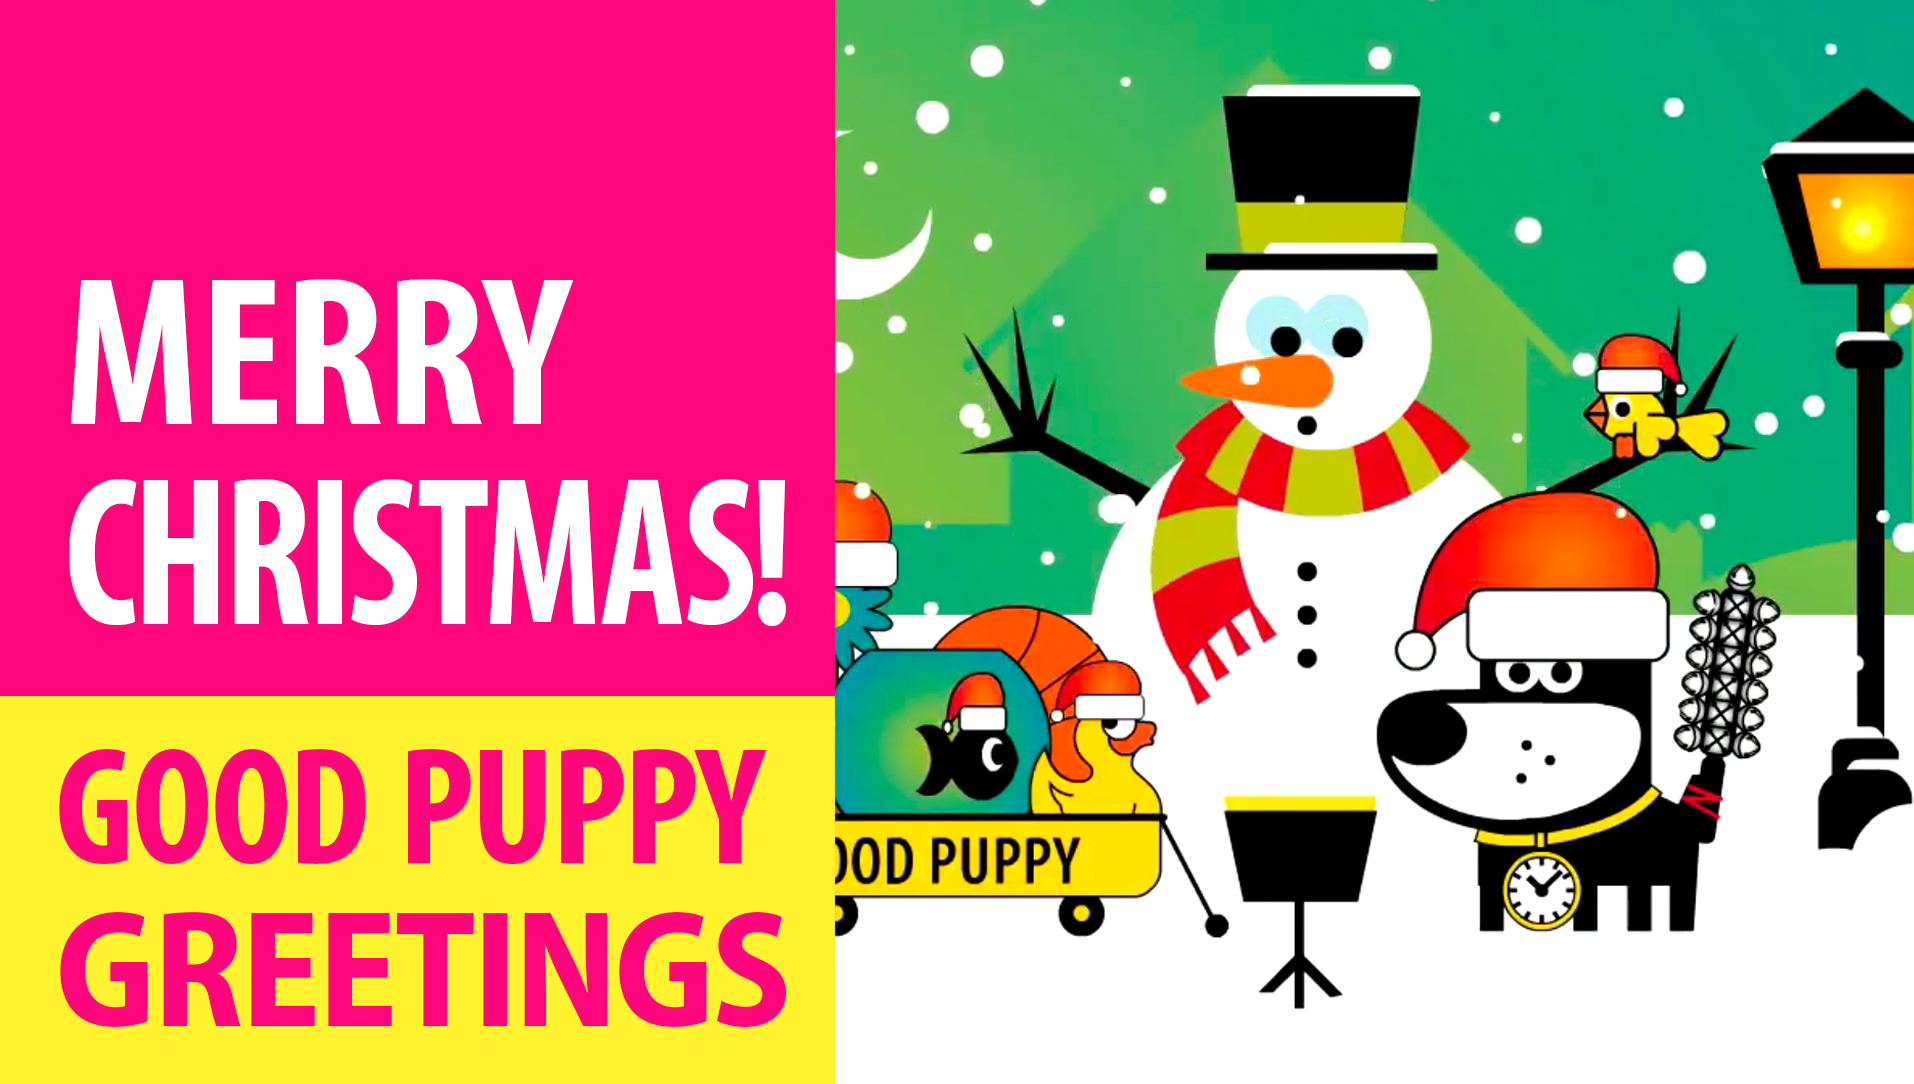 Merry Christmas! Animated Greeting Cards - Free E-Cards By GOOD PUPPY